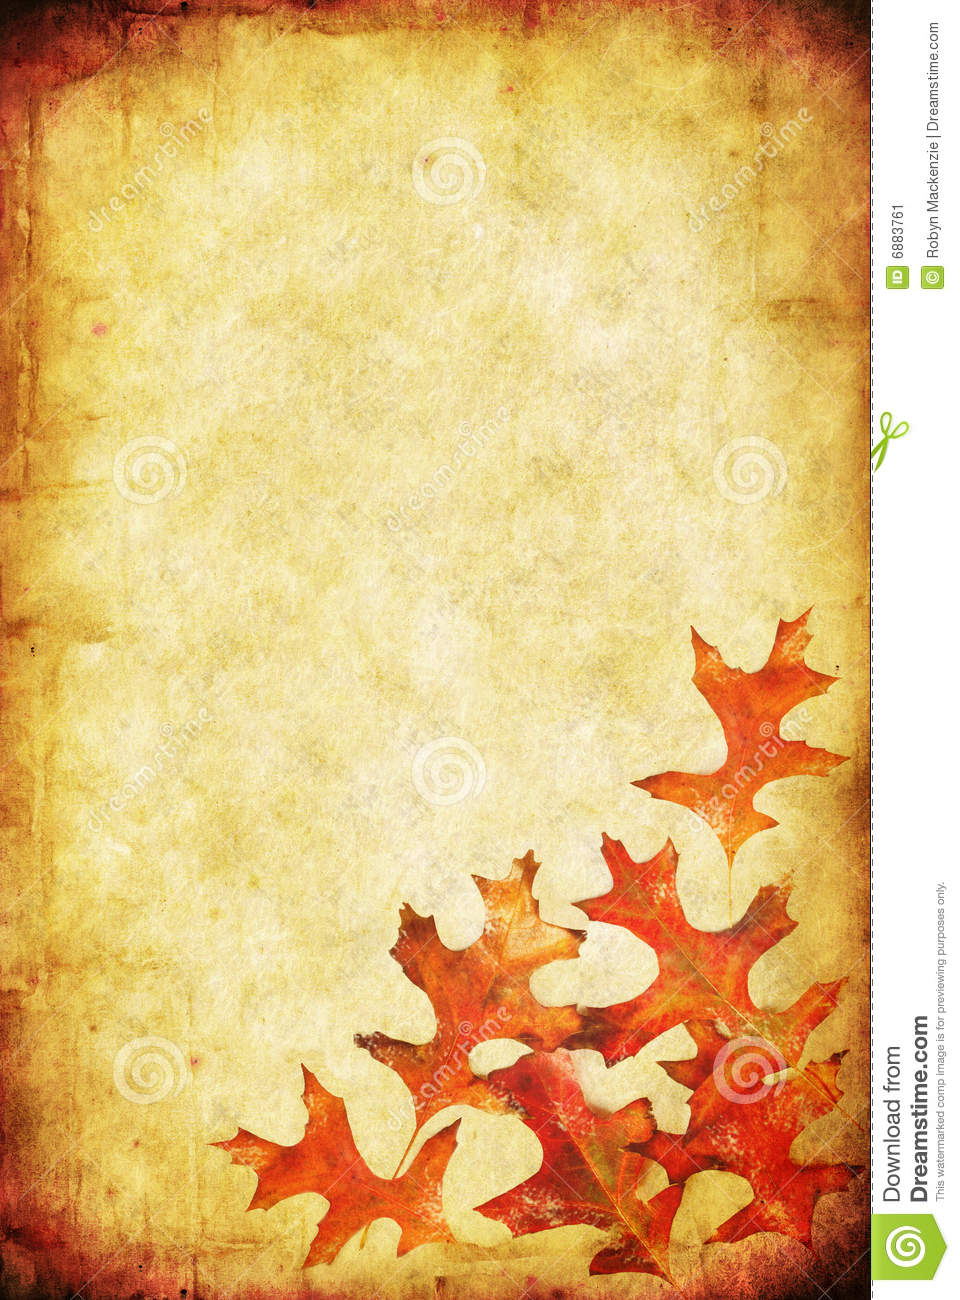 Fall Colors Wallpaper Background Fall Grunge Background Stock Image Image 6883761